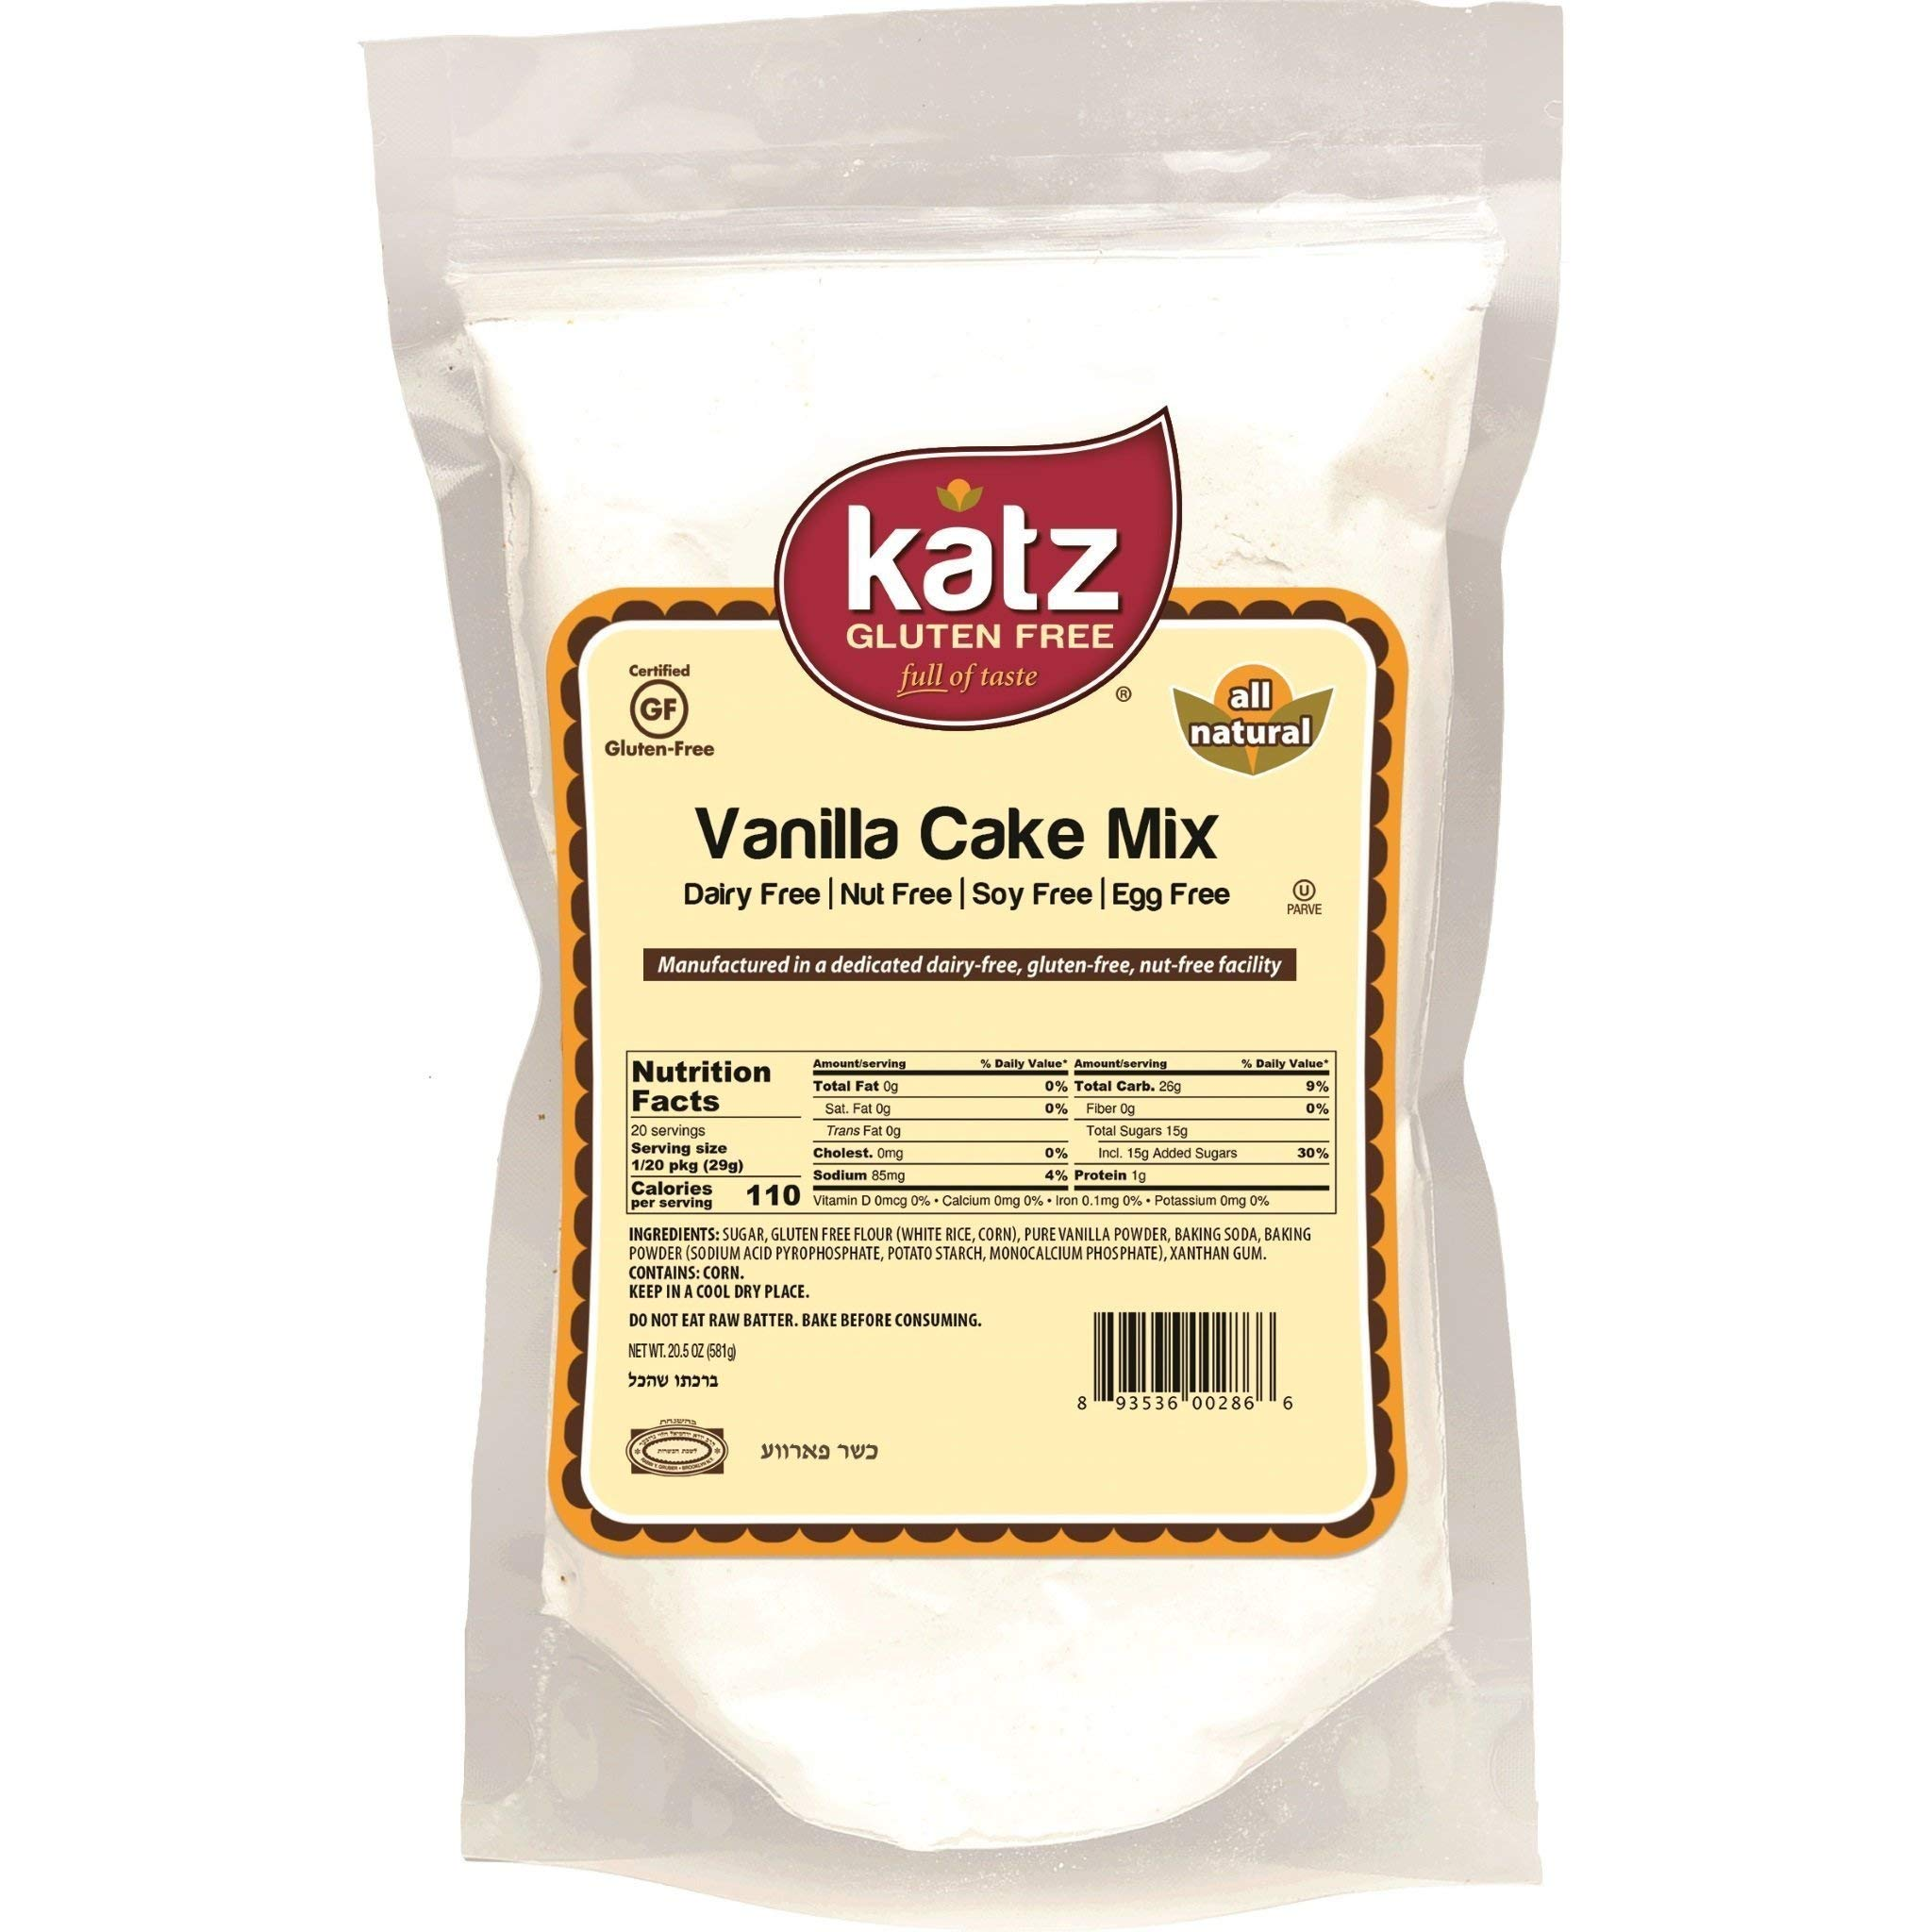 Katz Gluten Free Vanilla Cake Mix | Dairy, Nut, Soy and Gluten Free | Kosher (6 Packs, 20.5 Ounce Each) by Katz Gluten Free